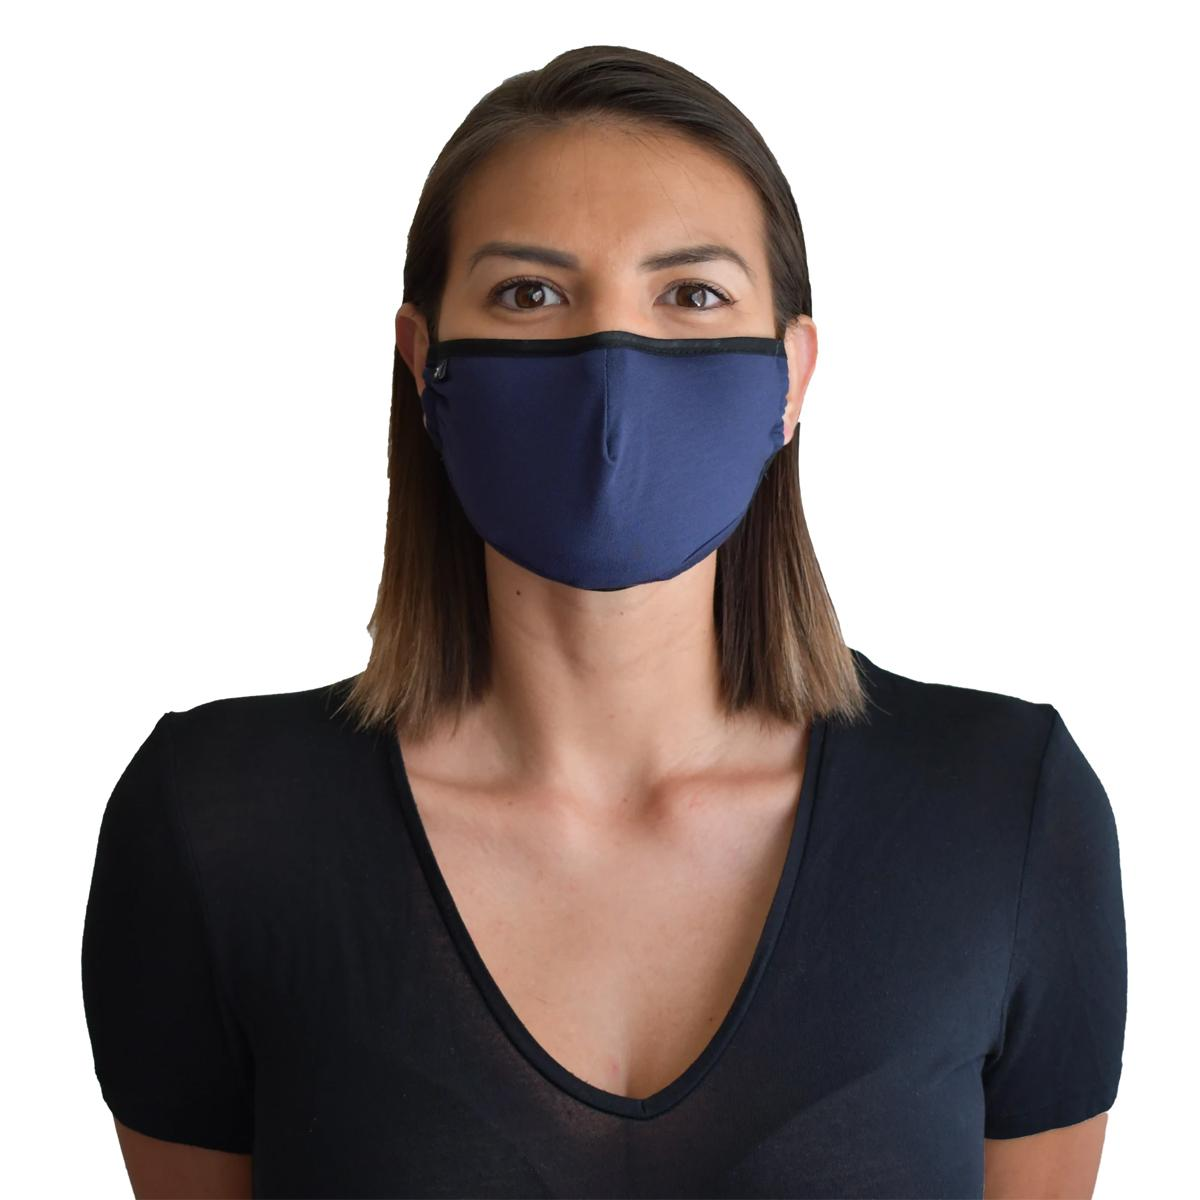 Travleisure Adjustable Reusable Washable Face Mask for $7